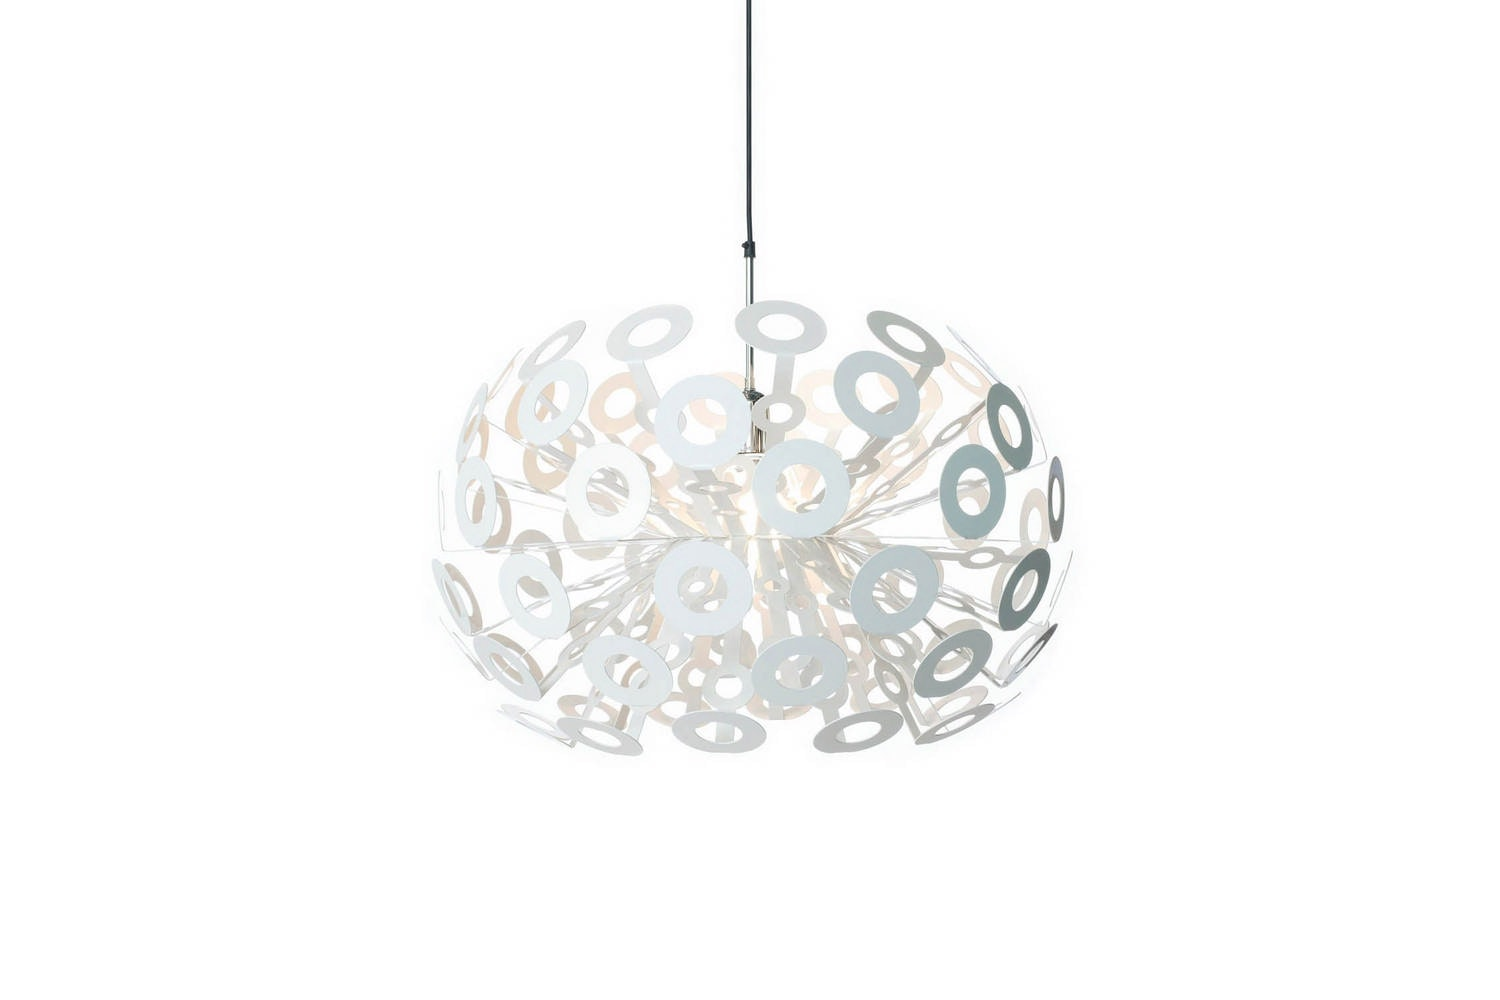 Dandelion Suspension Lamp by Richard Hutten for Moooi